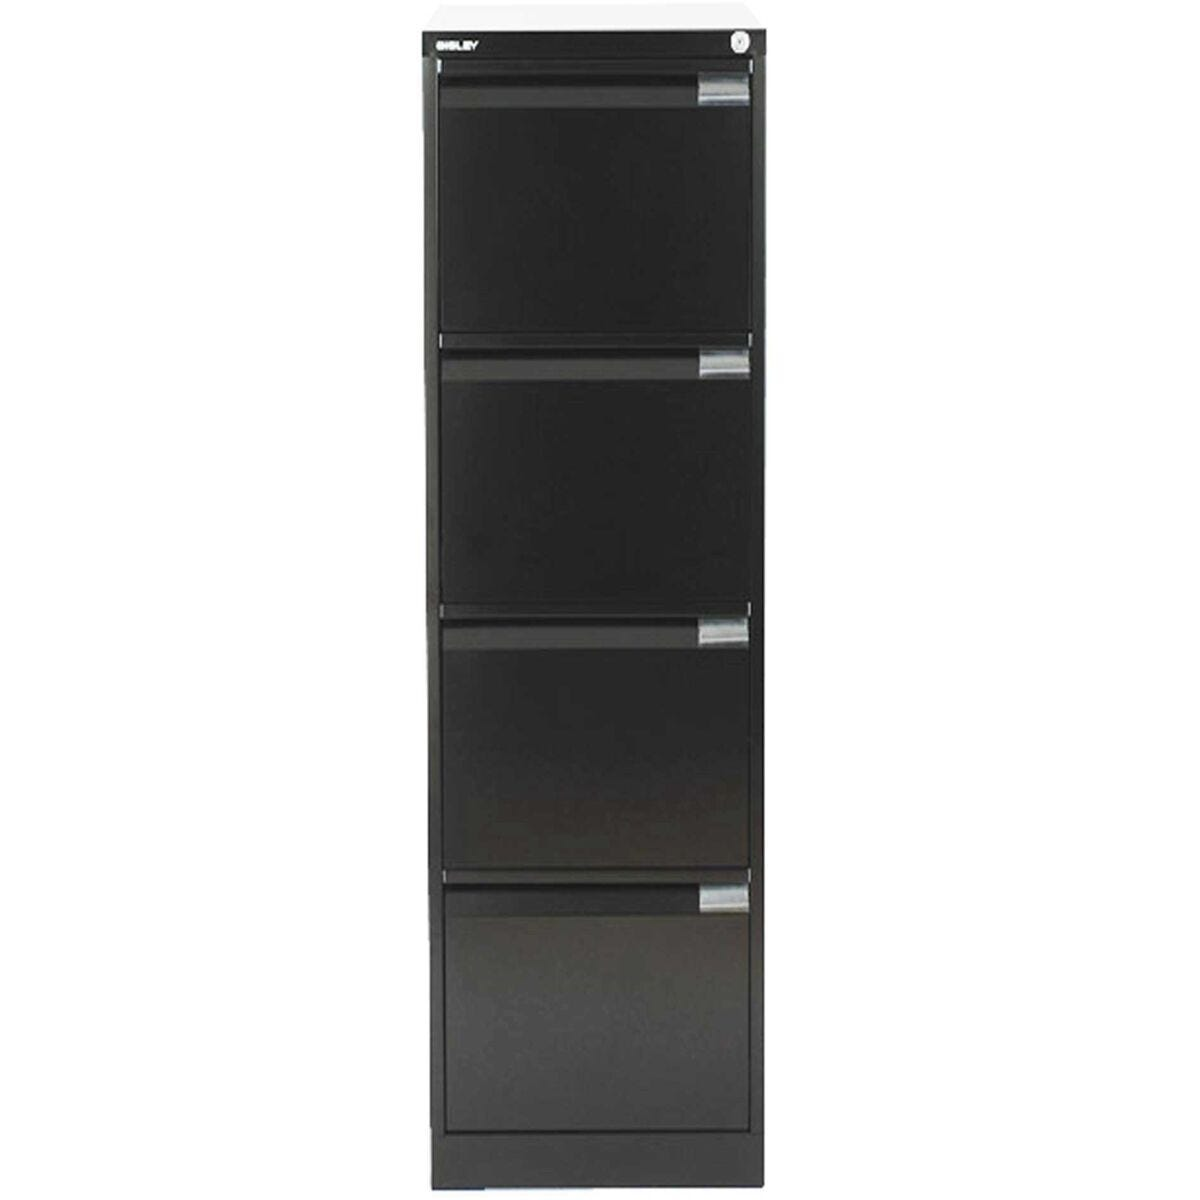 Bisley Filing Cabinet BS4E 4 drawer H1321xW470xD622mm Steel